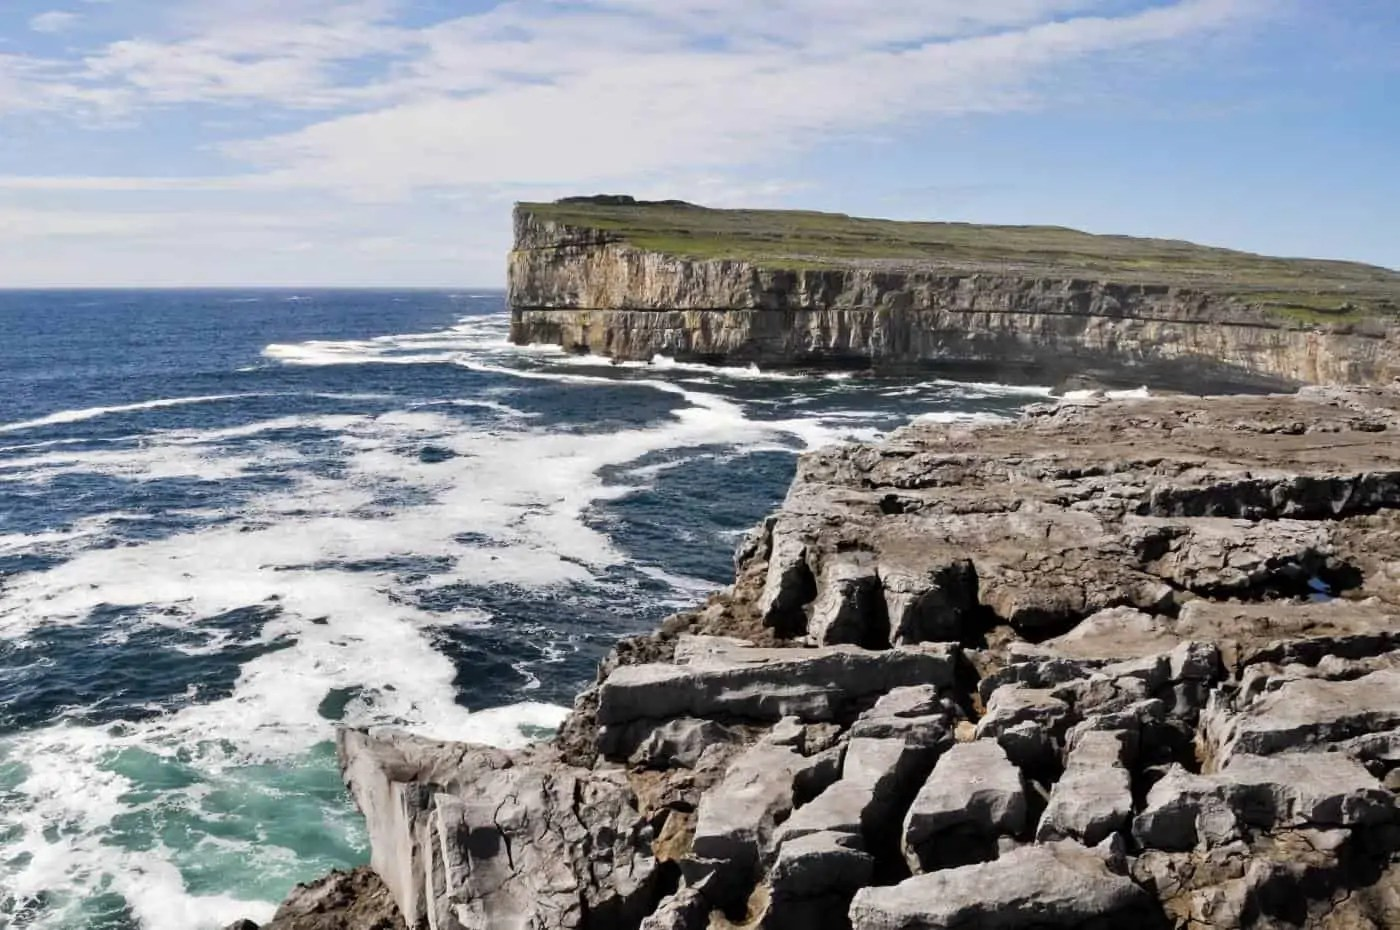 Cliffs of Inishmore | c/o Deposit Photos